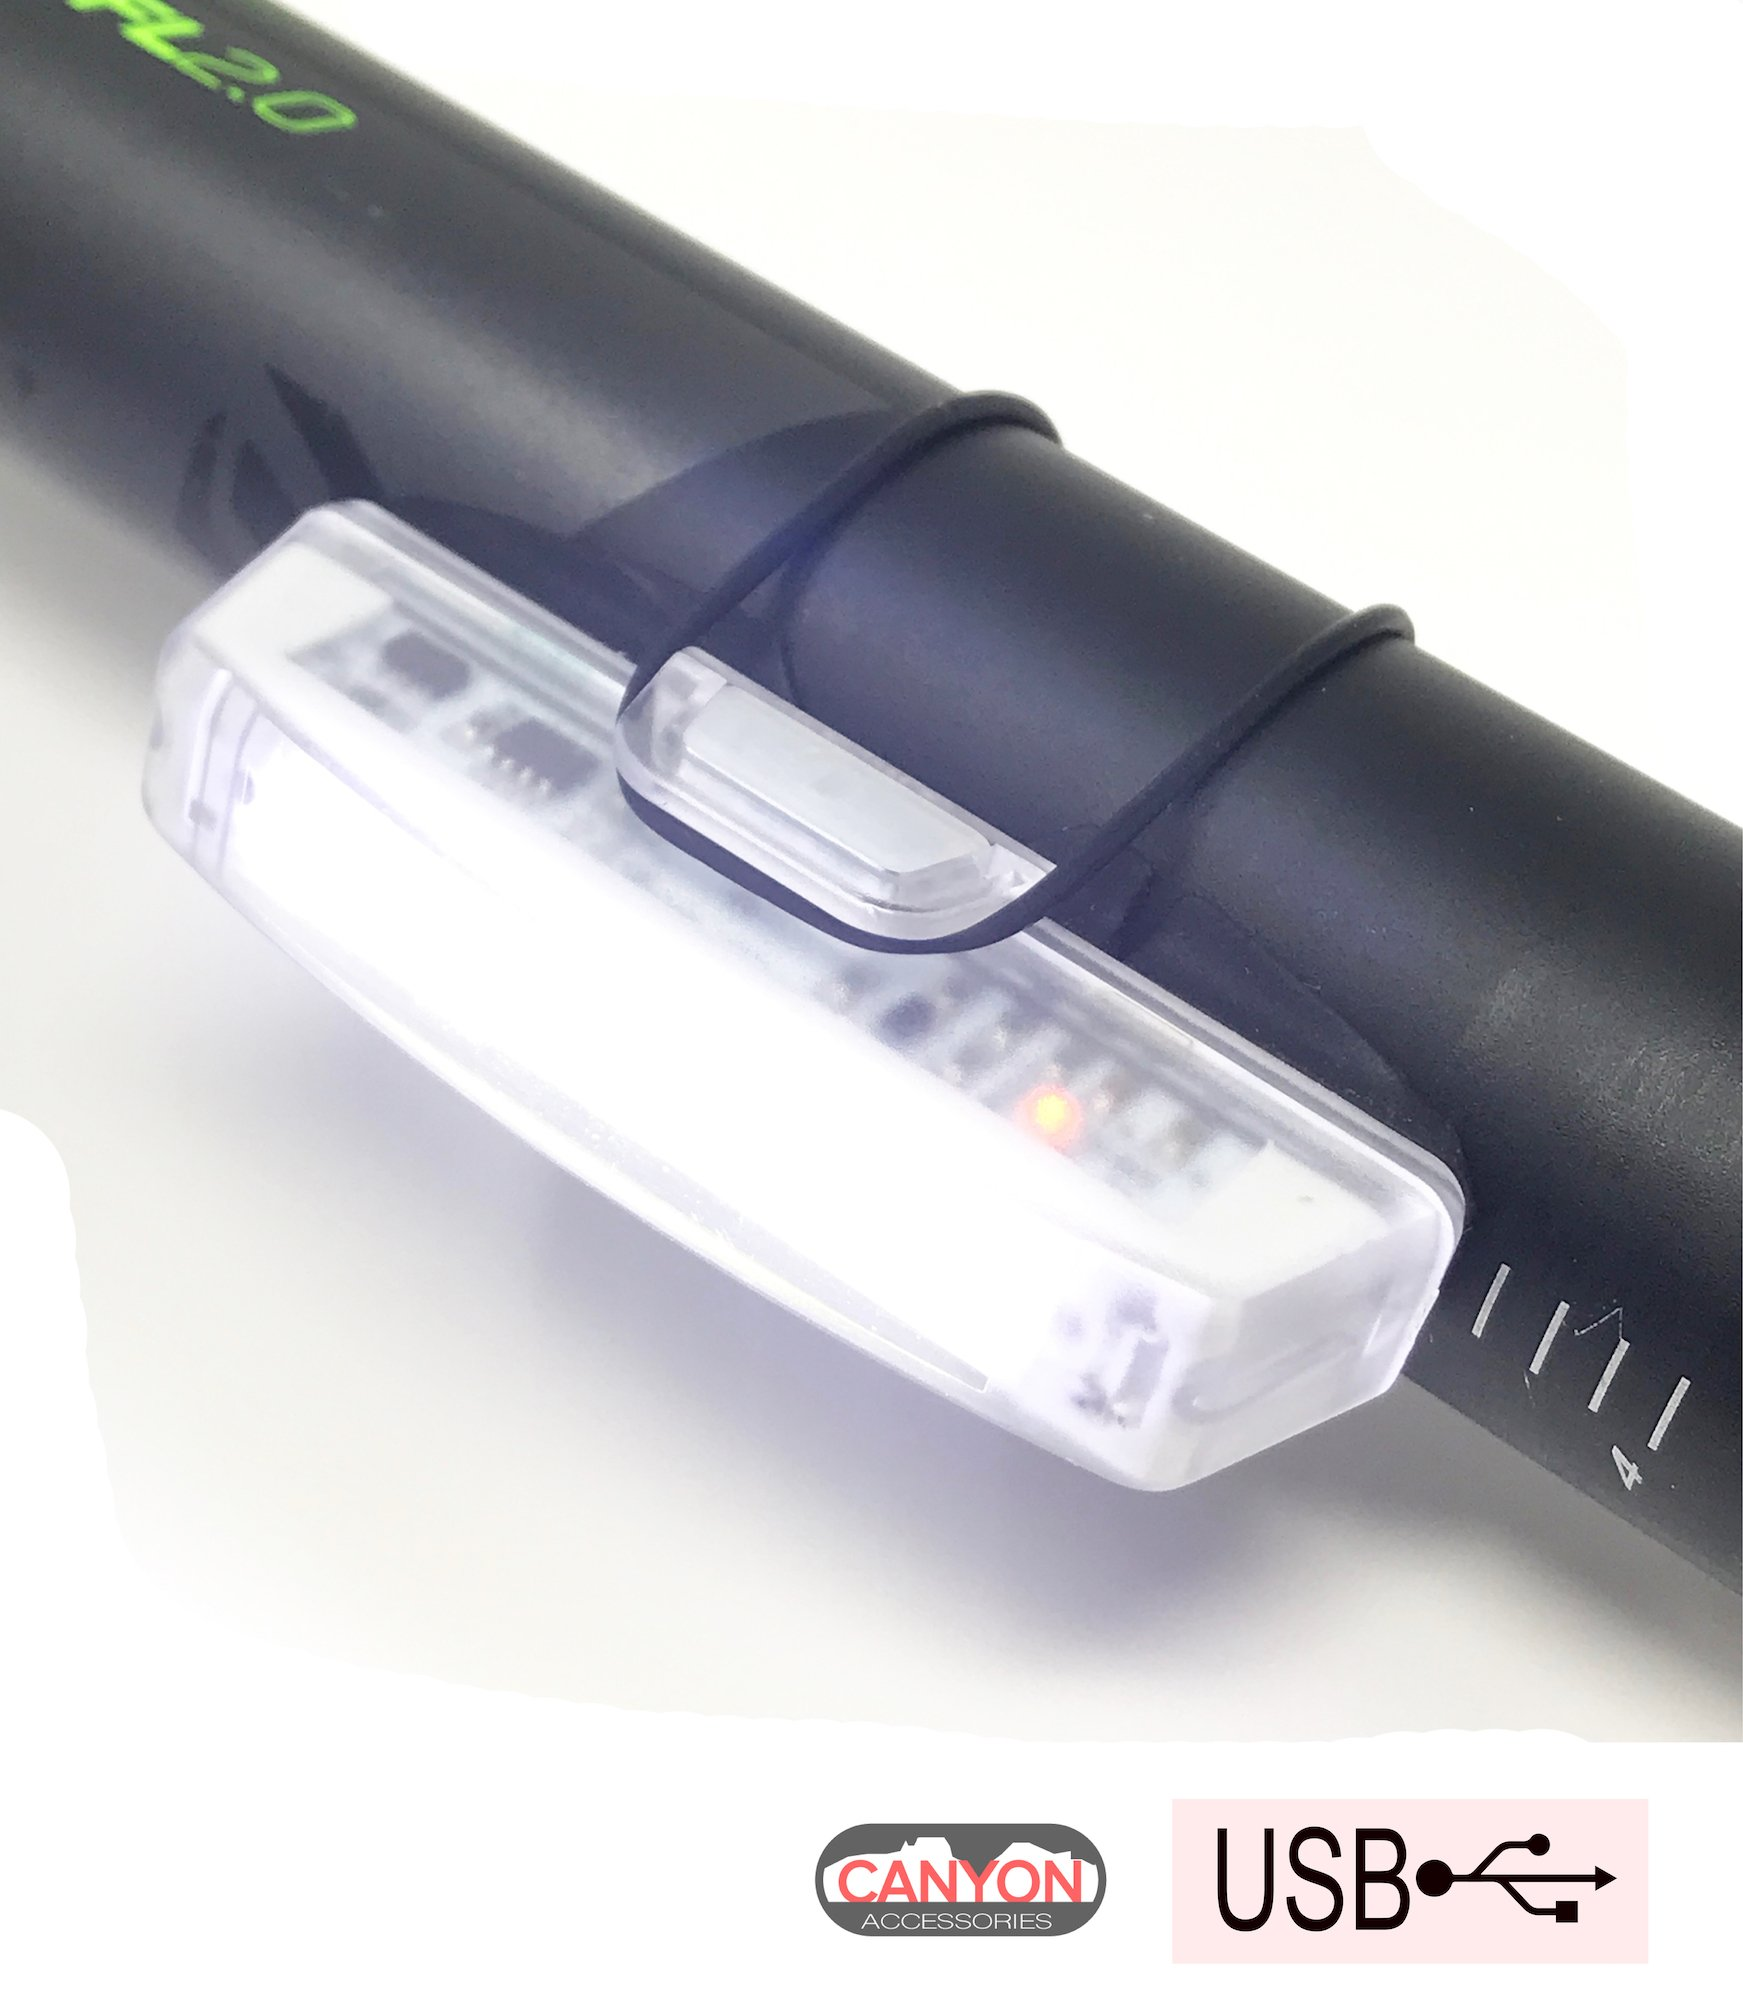 Canyon Accessories Super Bright Front Bike Light with USB Cable - Rechargeable - Fits On Any Bike or Helmets - Water Resistant IPX4-6 Light Modes Options